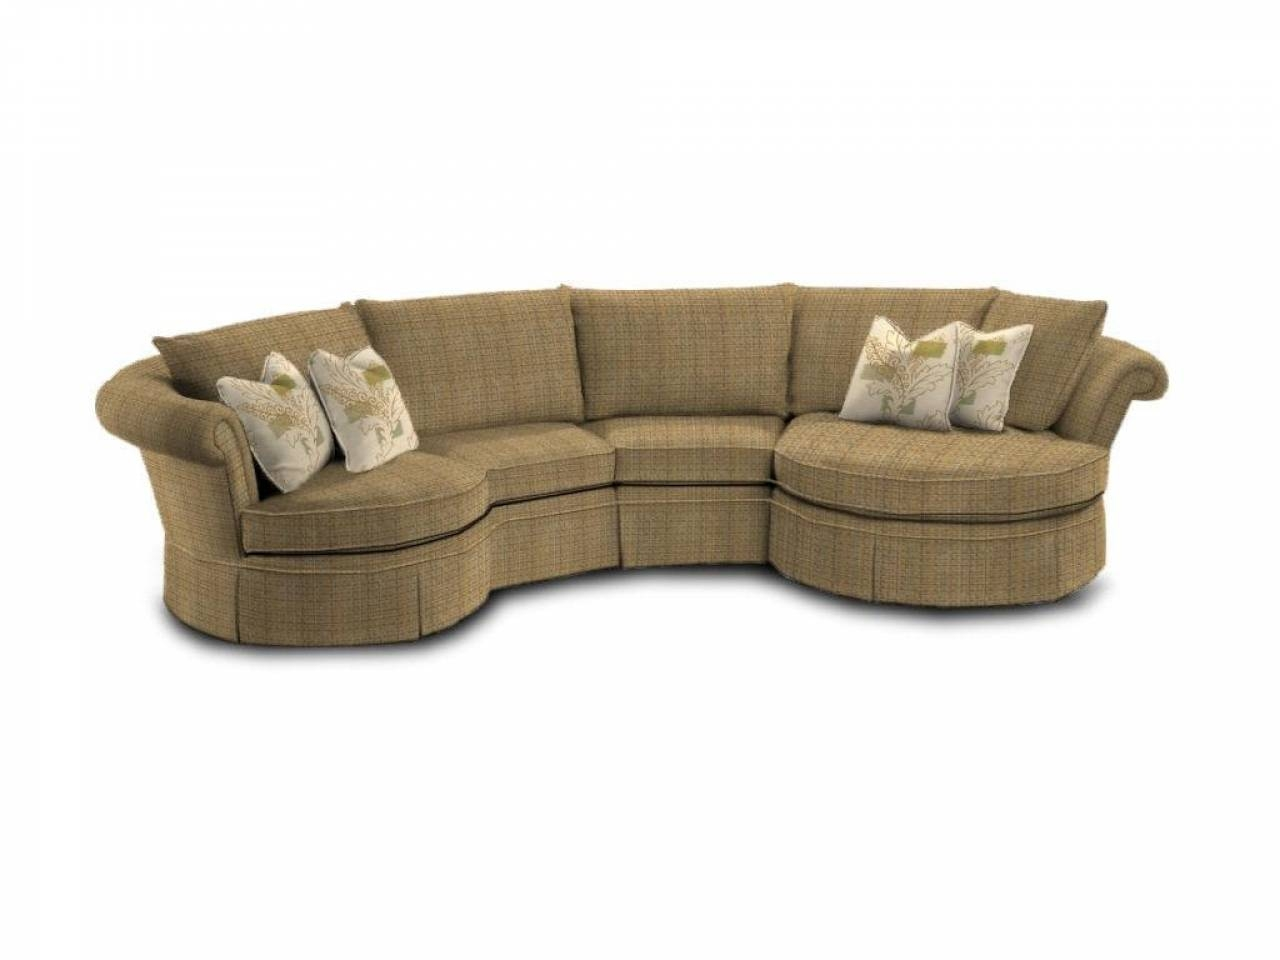 Round Sectional Sofa | Roselawnlutheran Regarding Circular Sectional Sofa (View 23 of 30)